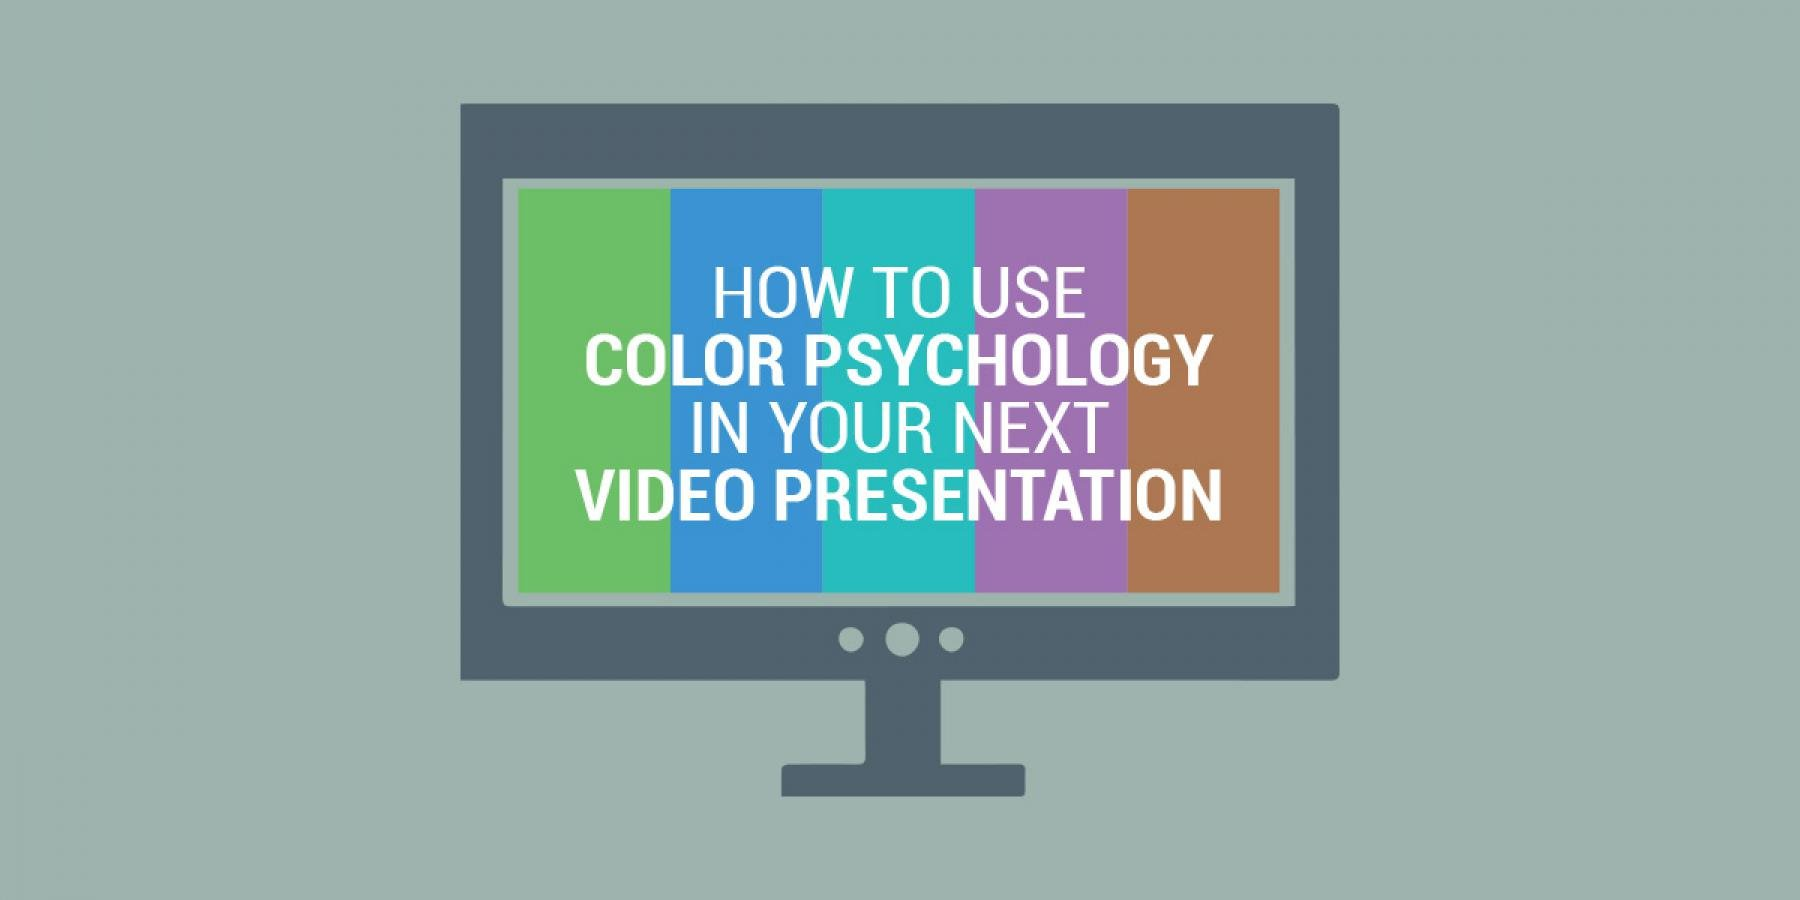 How-to-use-color-psychology-in-your-next-video-presentation